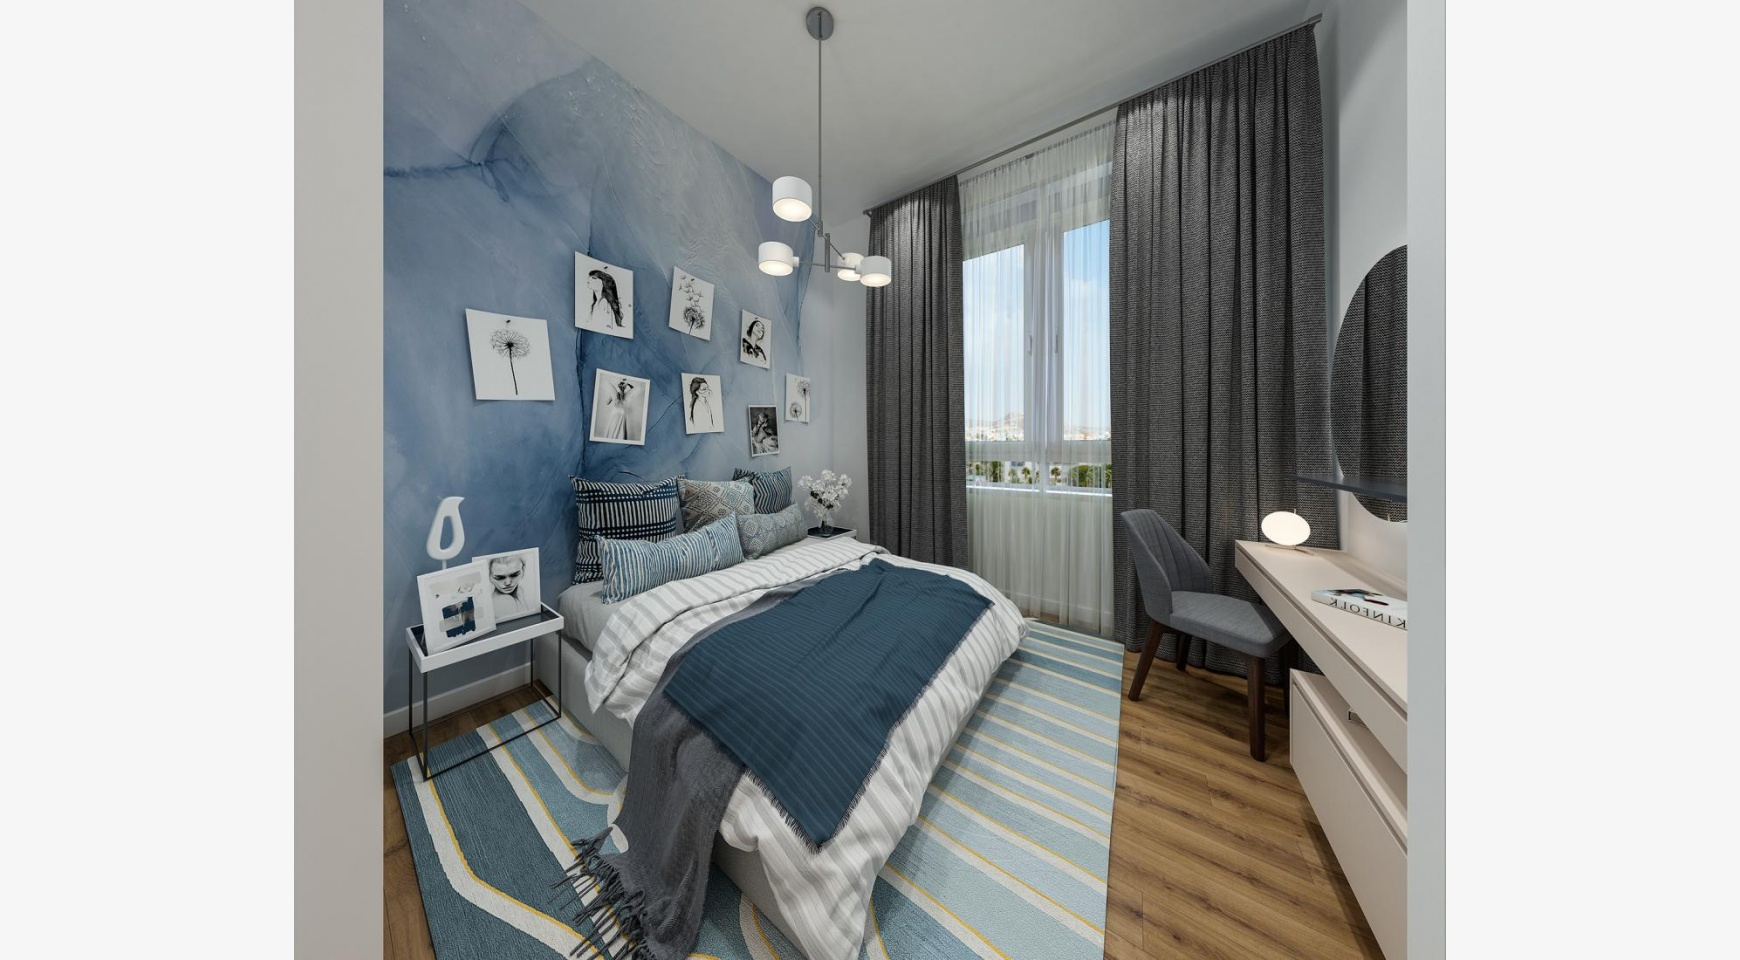 Urban City Residences, Block B. New Spacious 2 Bedroom Apartment 302 in the City Centre - 10